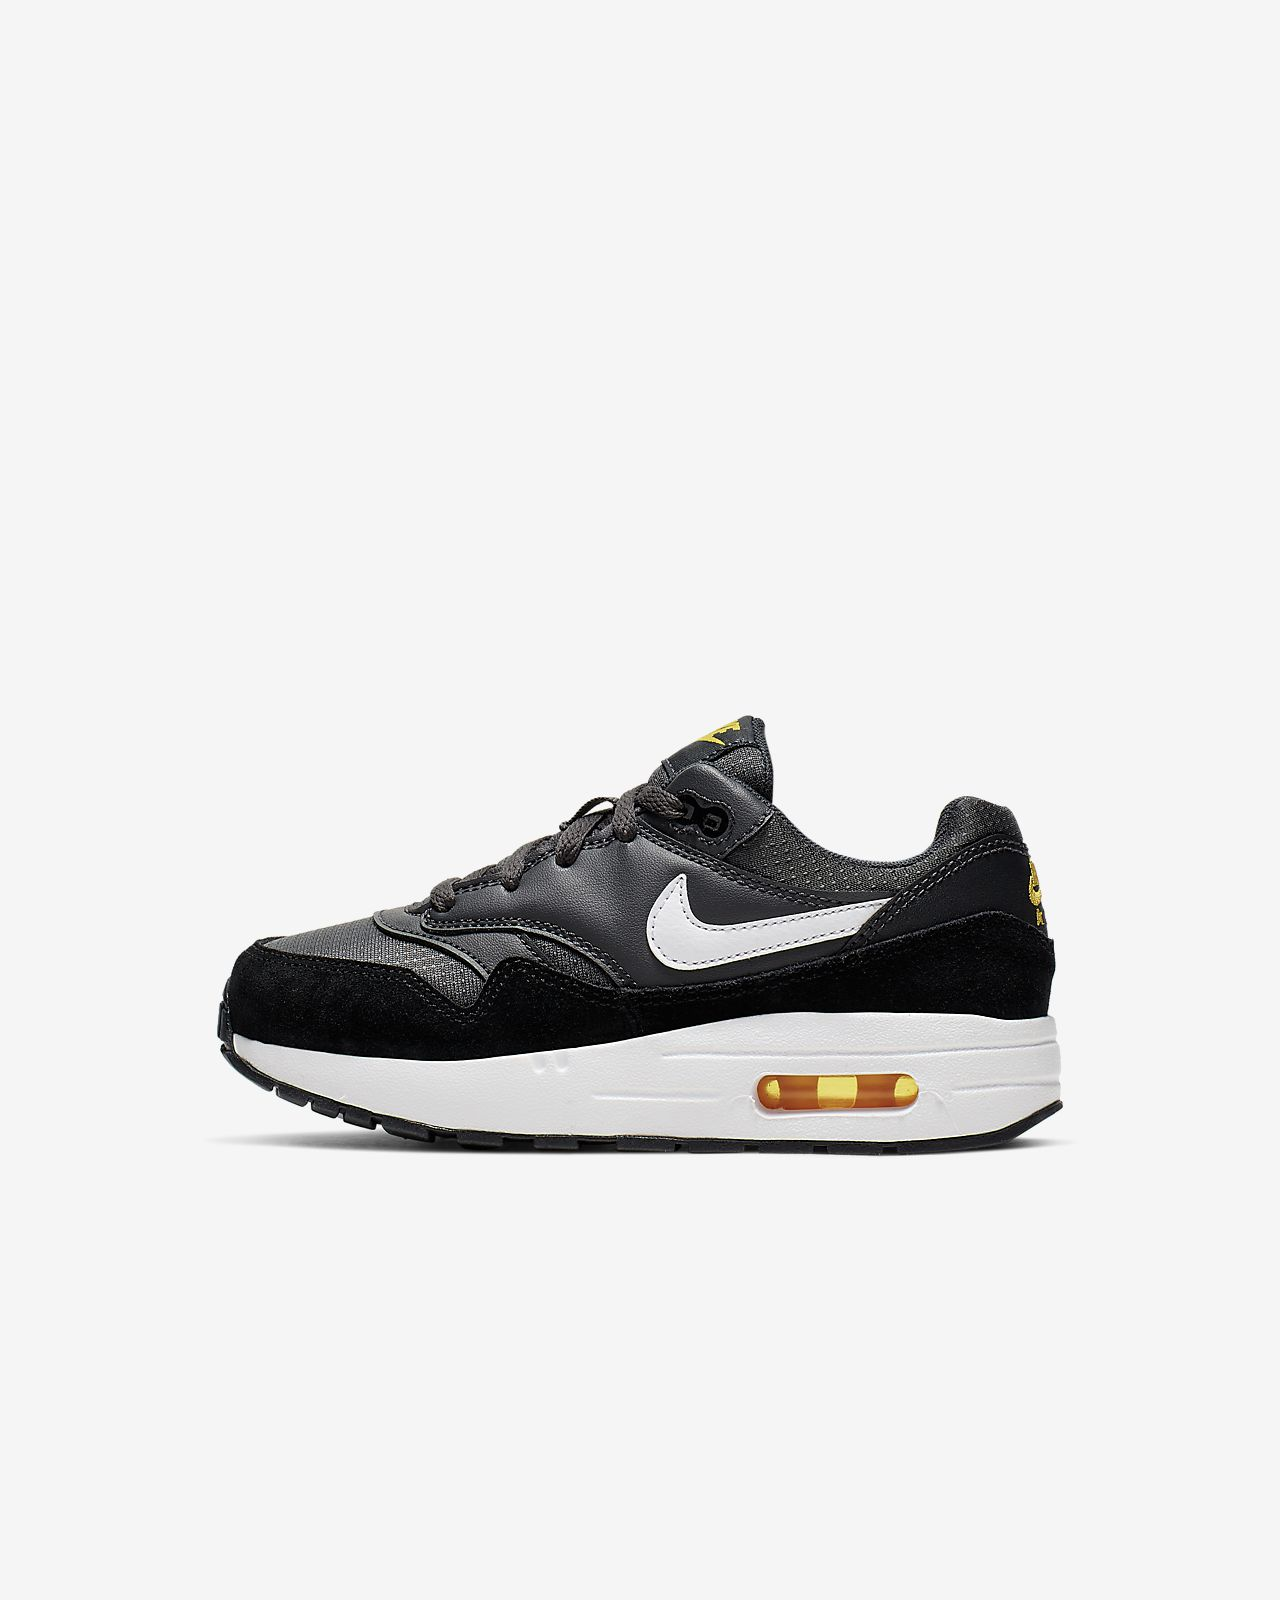 competitive price a850e 5048f ... Chaussure Nike Air Max 1 pour Jeune enfant